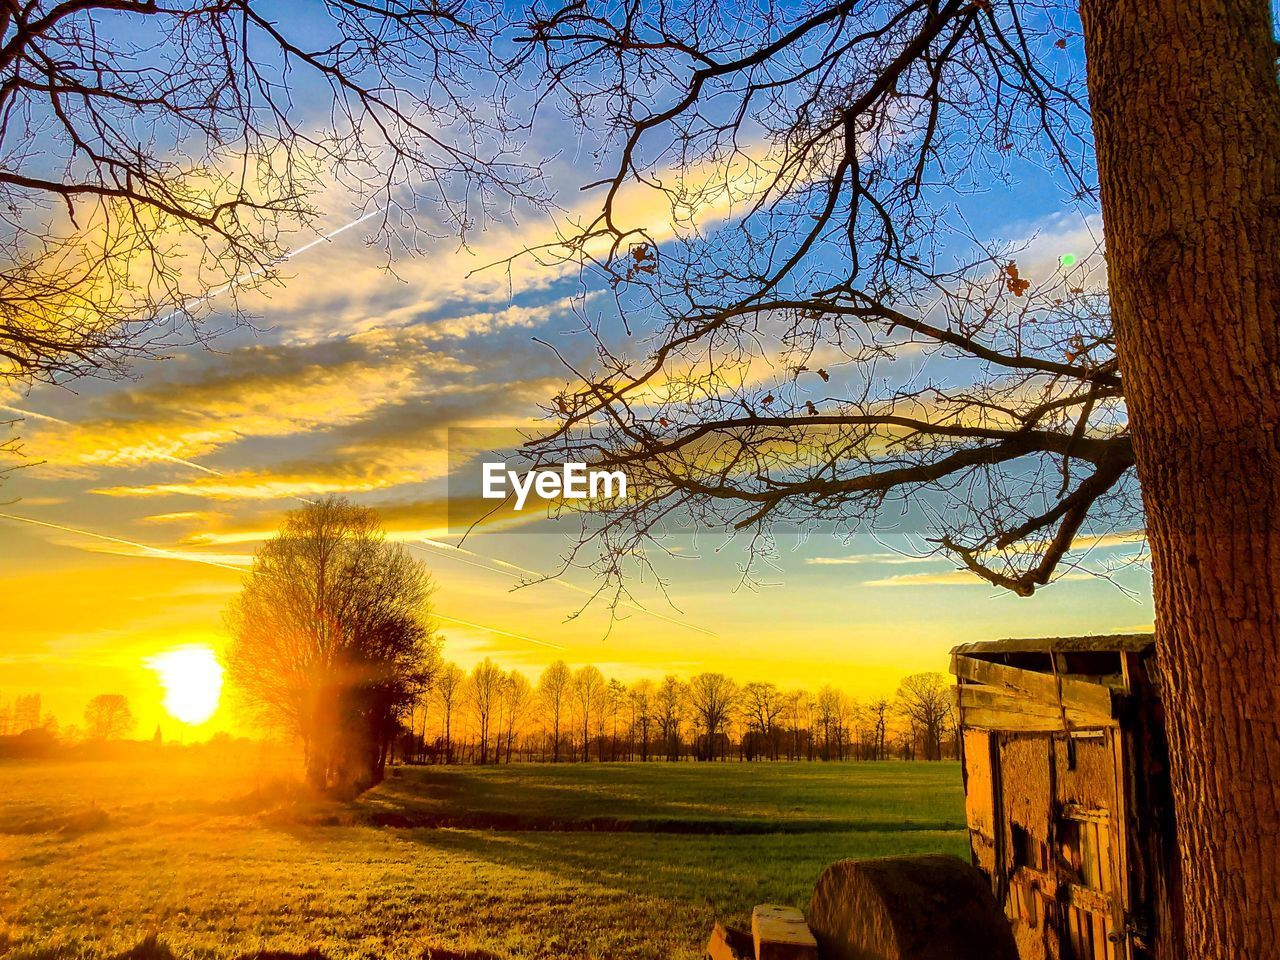 tree, sky, plant, sunset, nature, beauty in nature, cloud - sky, scenics - nature, tranquil scene, landscape, no people, field, branch, tranquility, land, environment, tree trunk, trunk, sunlight, agriculture, outdoors, sun